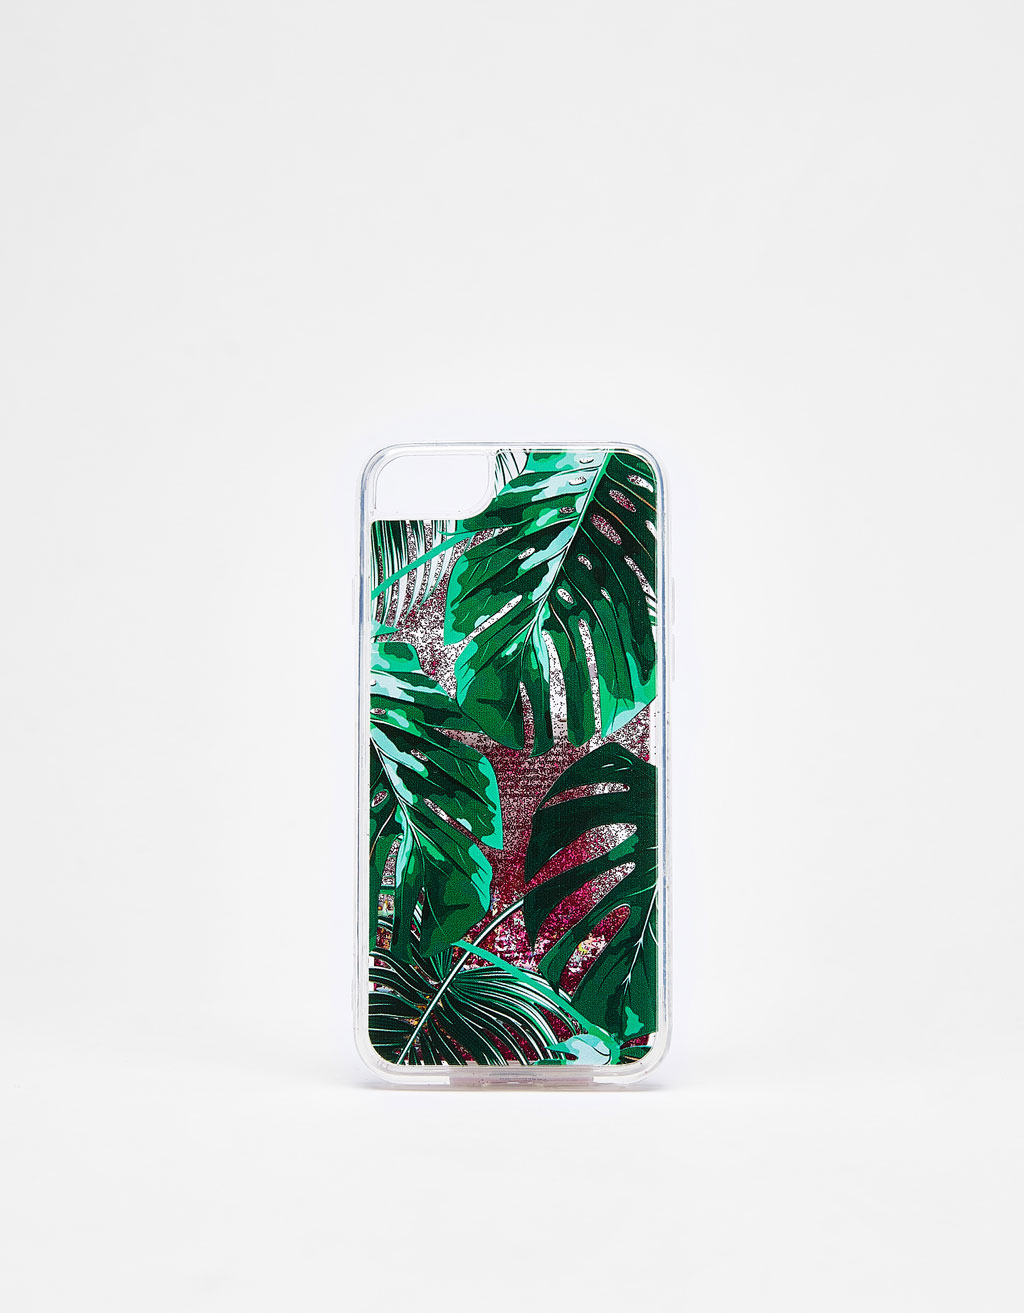 Tropical iPhone 6/6s/7/8 case